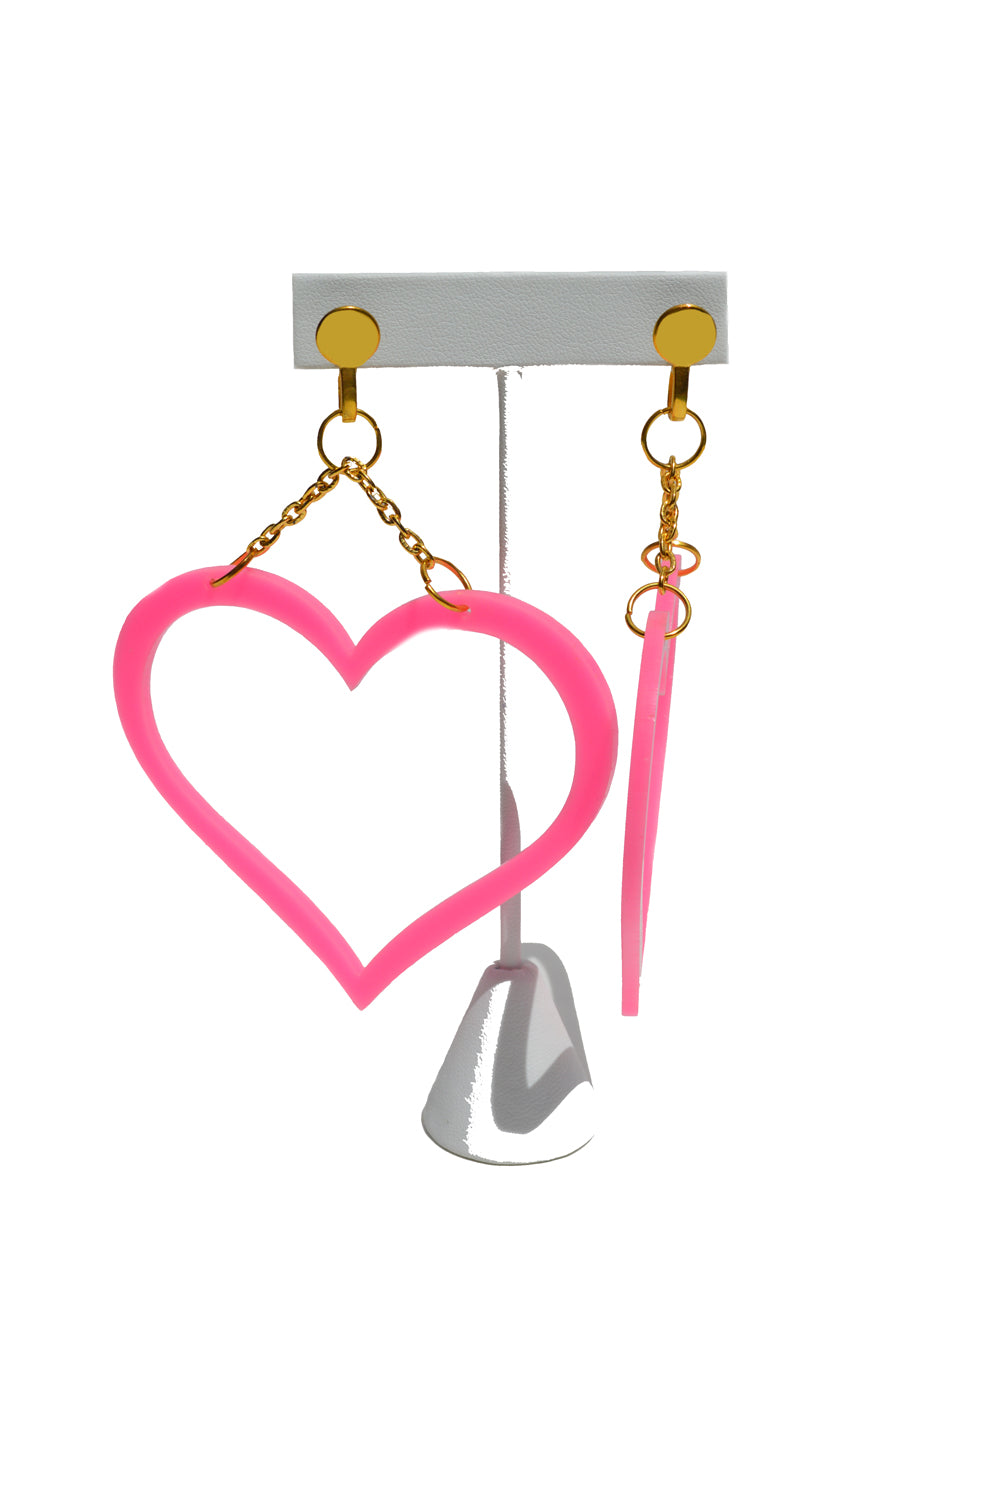 Heart Statement Earrings